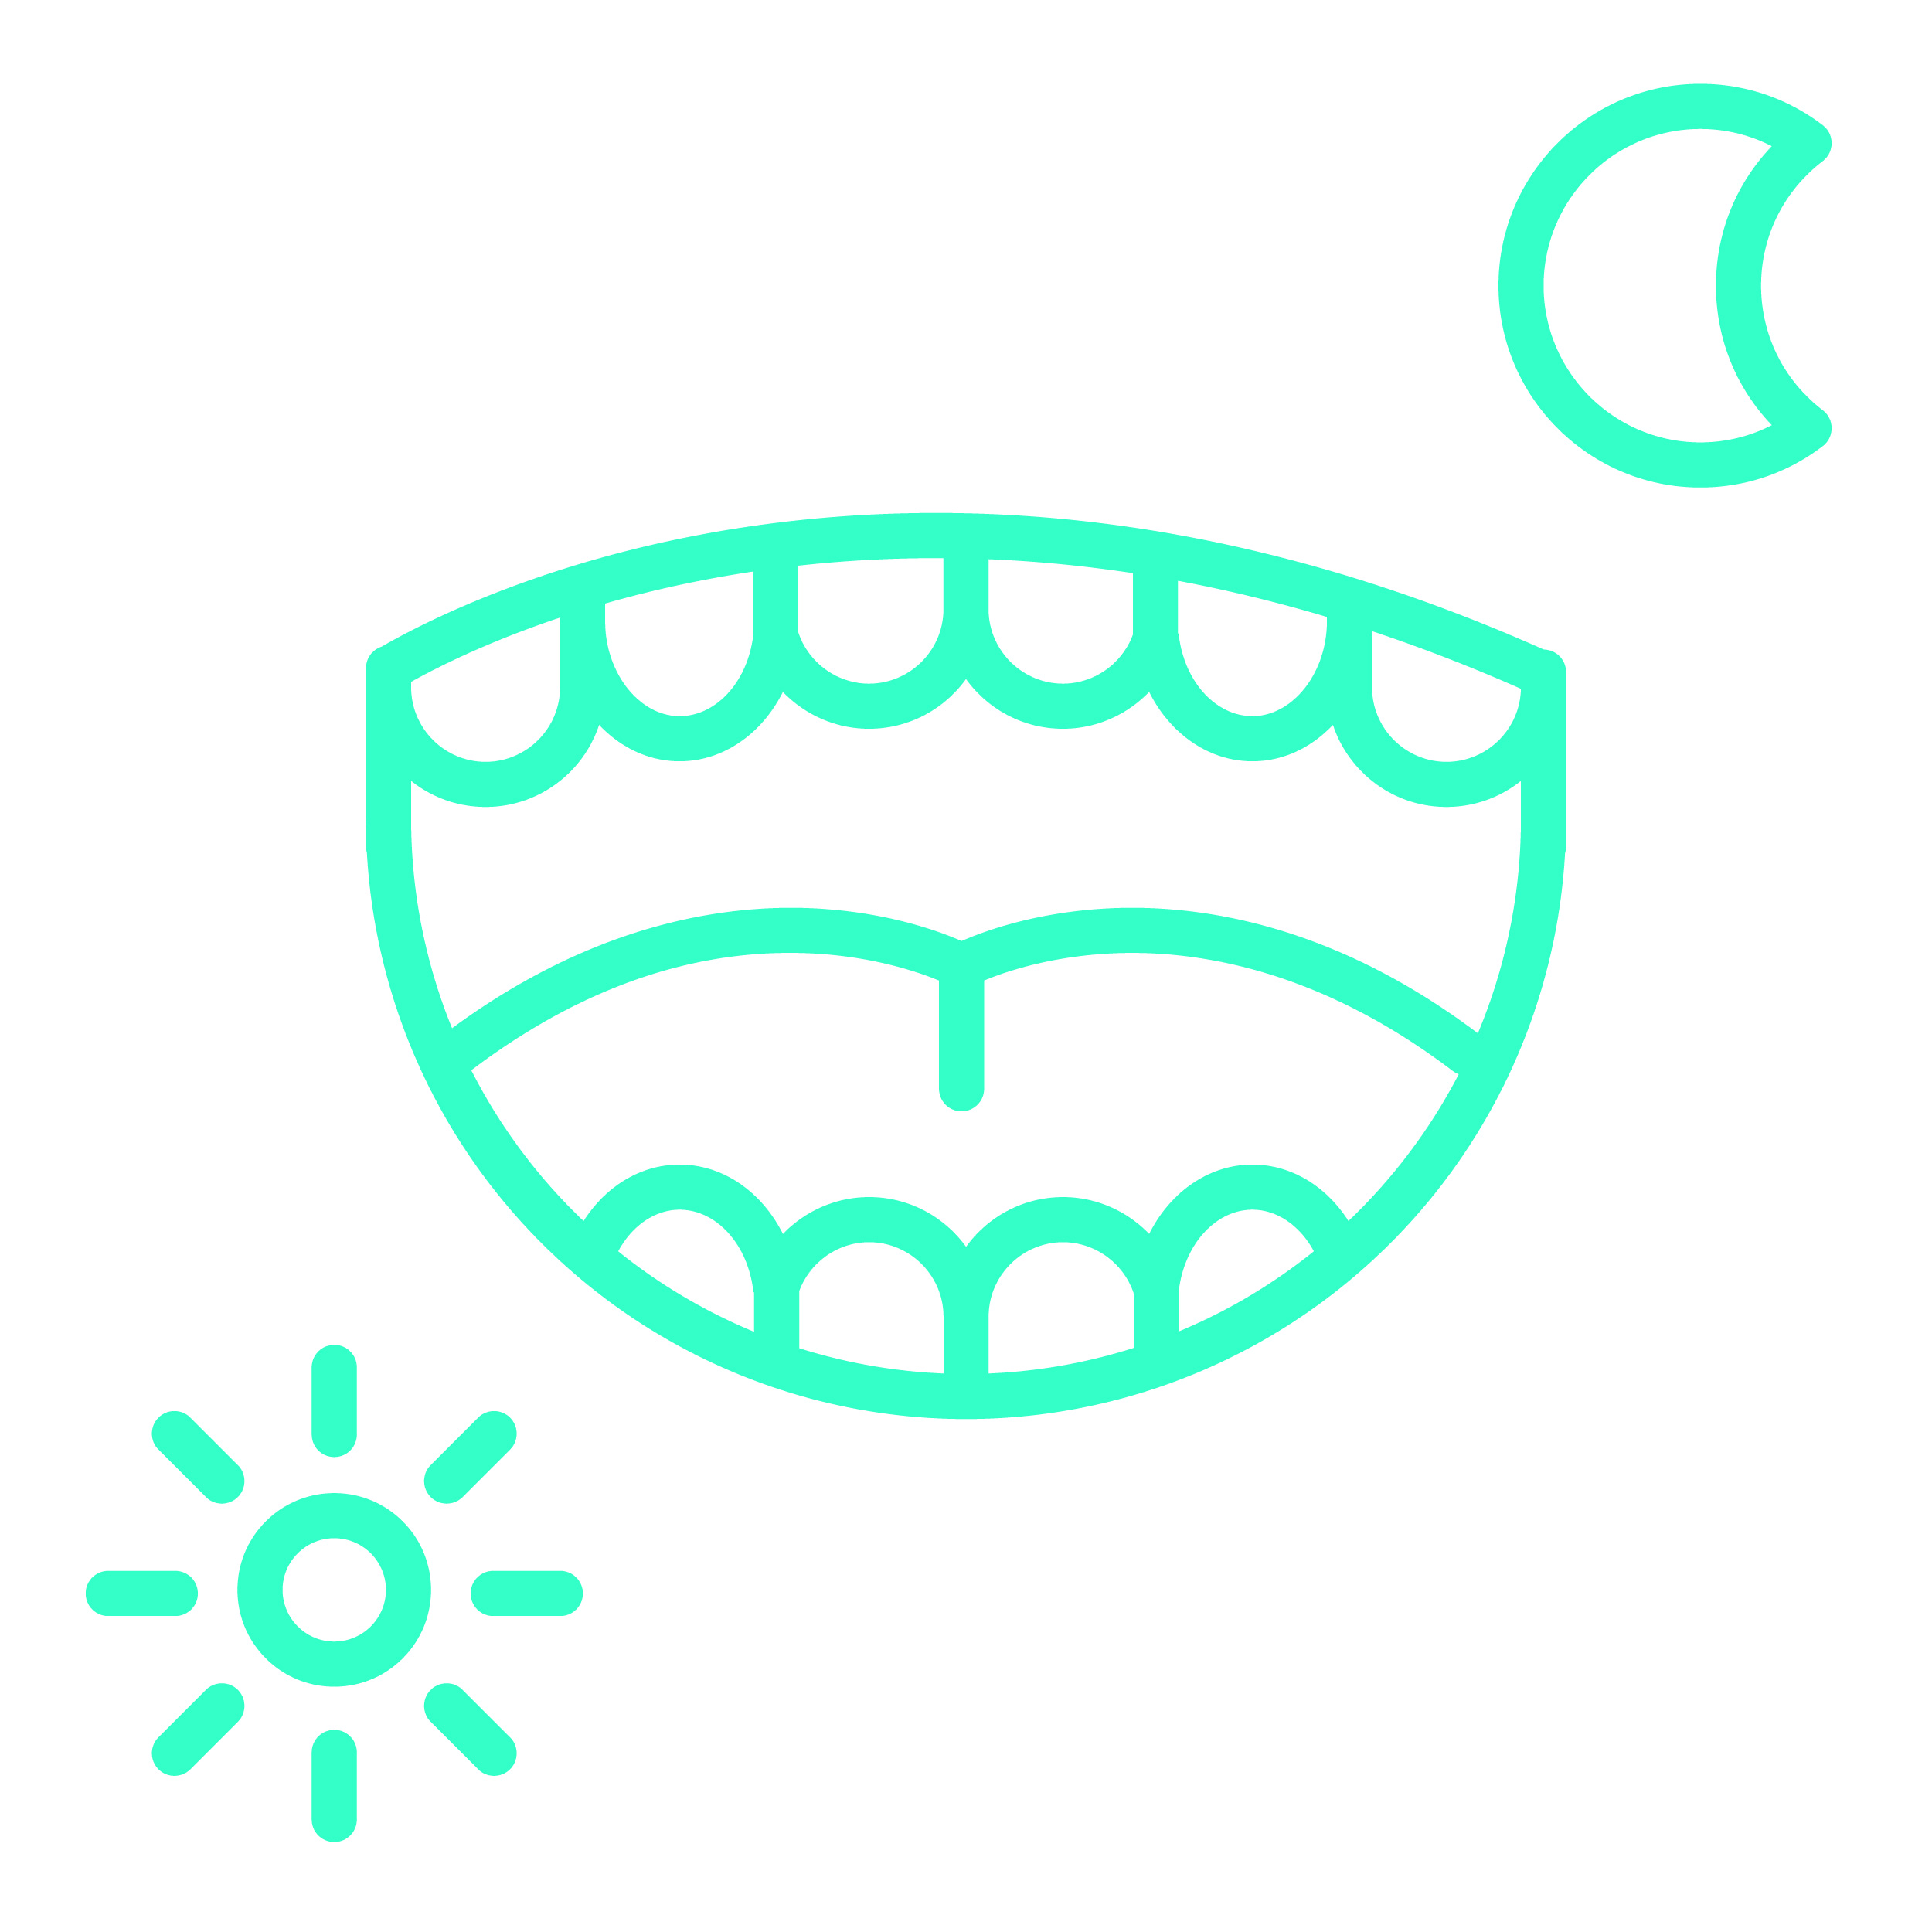 cartoon image of open mouth with sun and moon